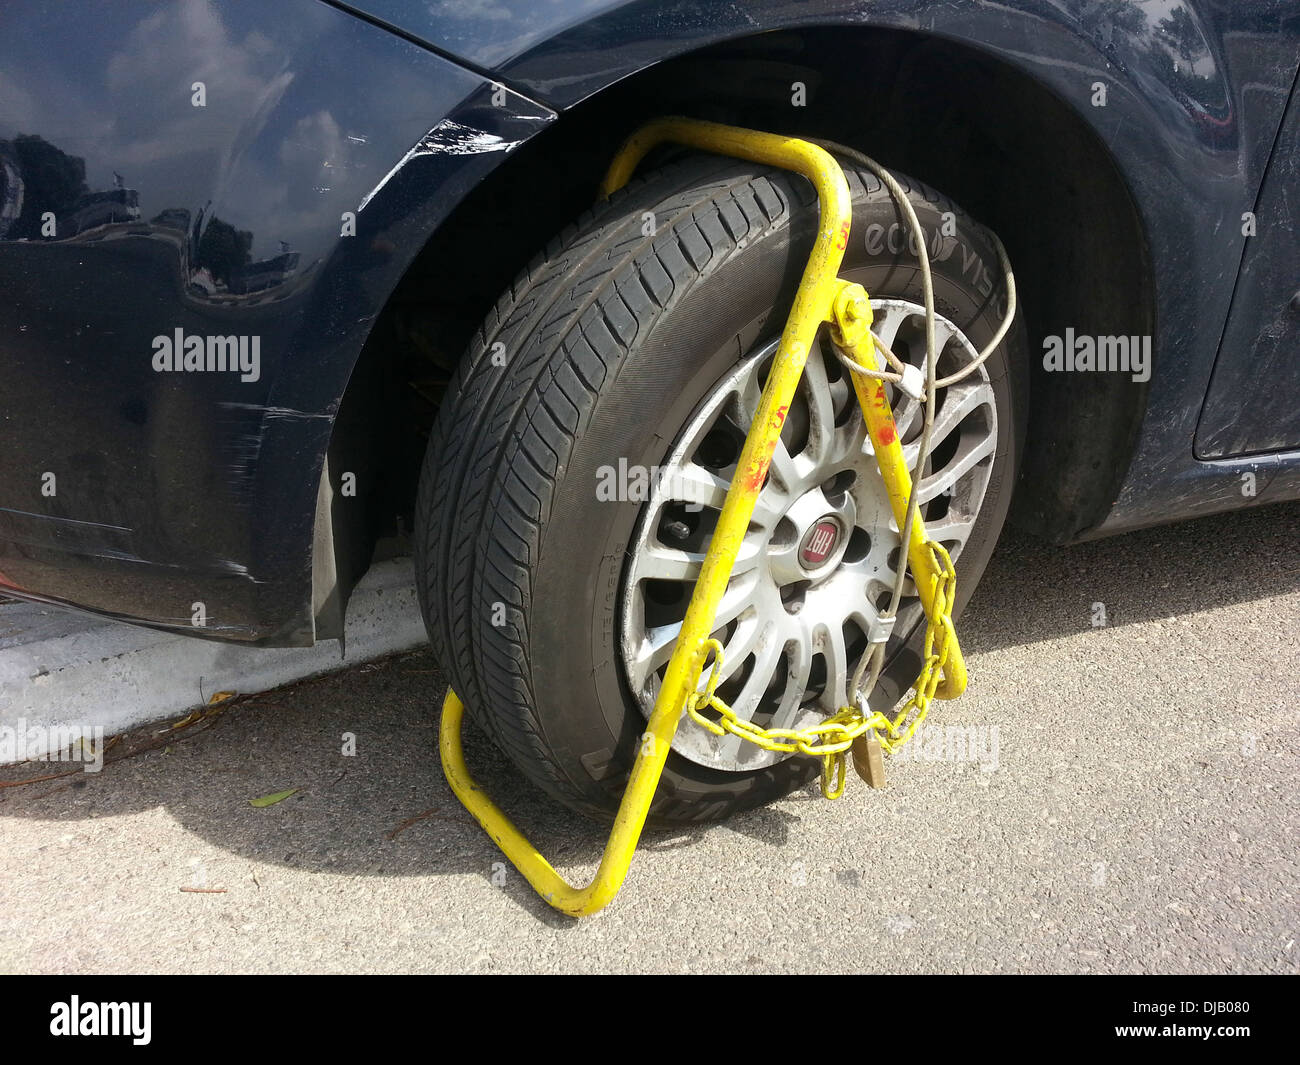 Car wheel clamped for illegal parking - Stock Image